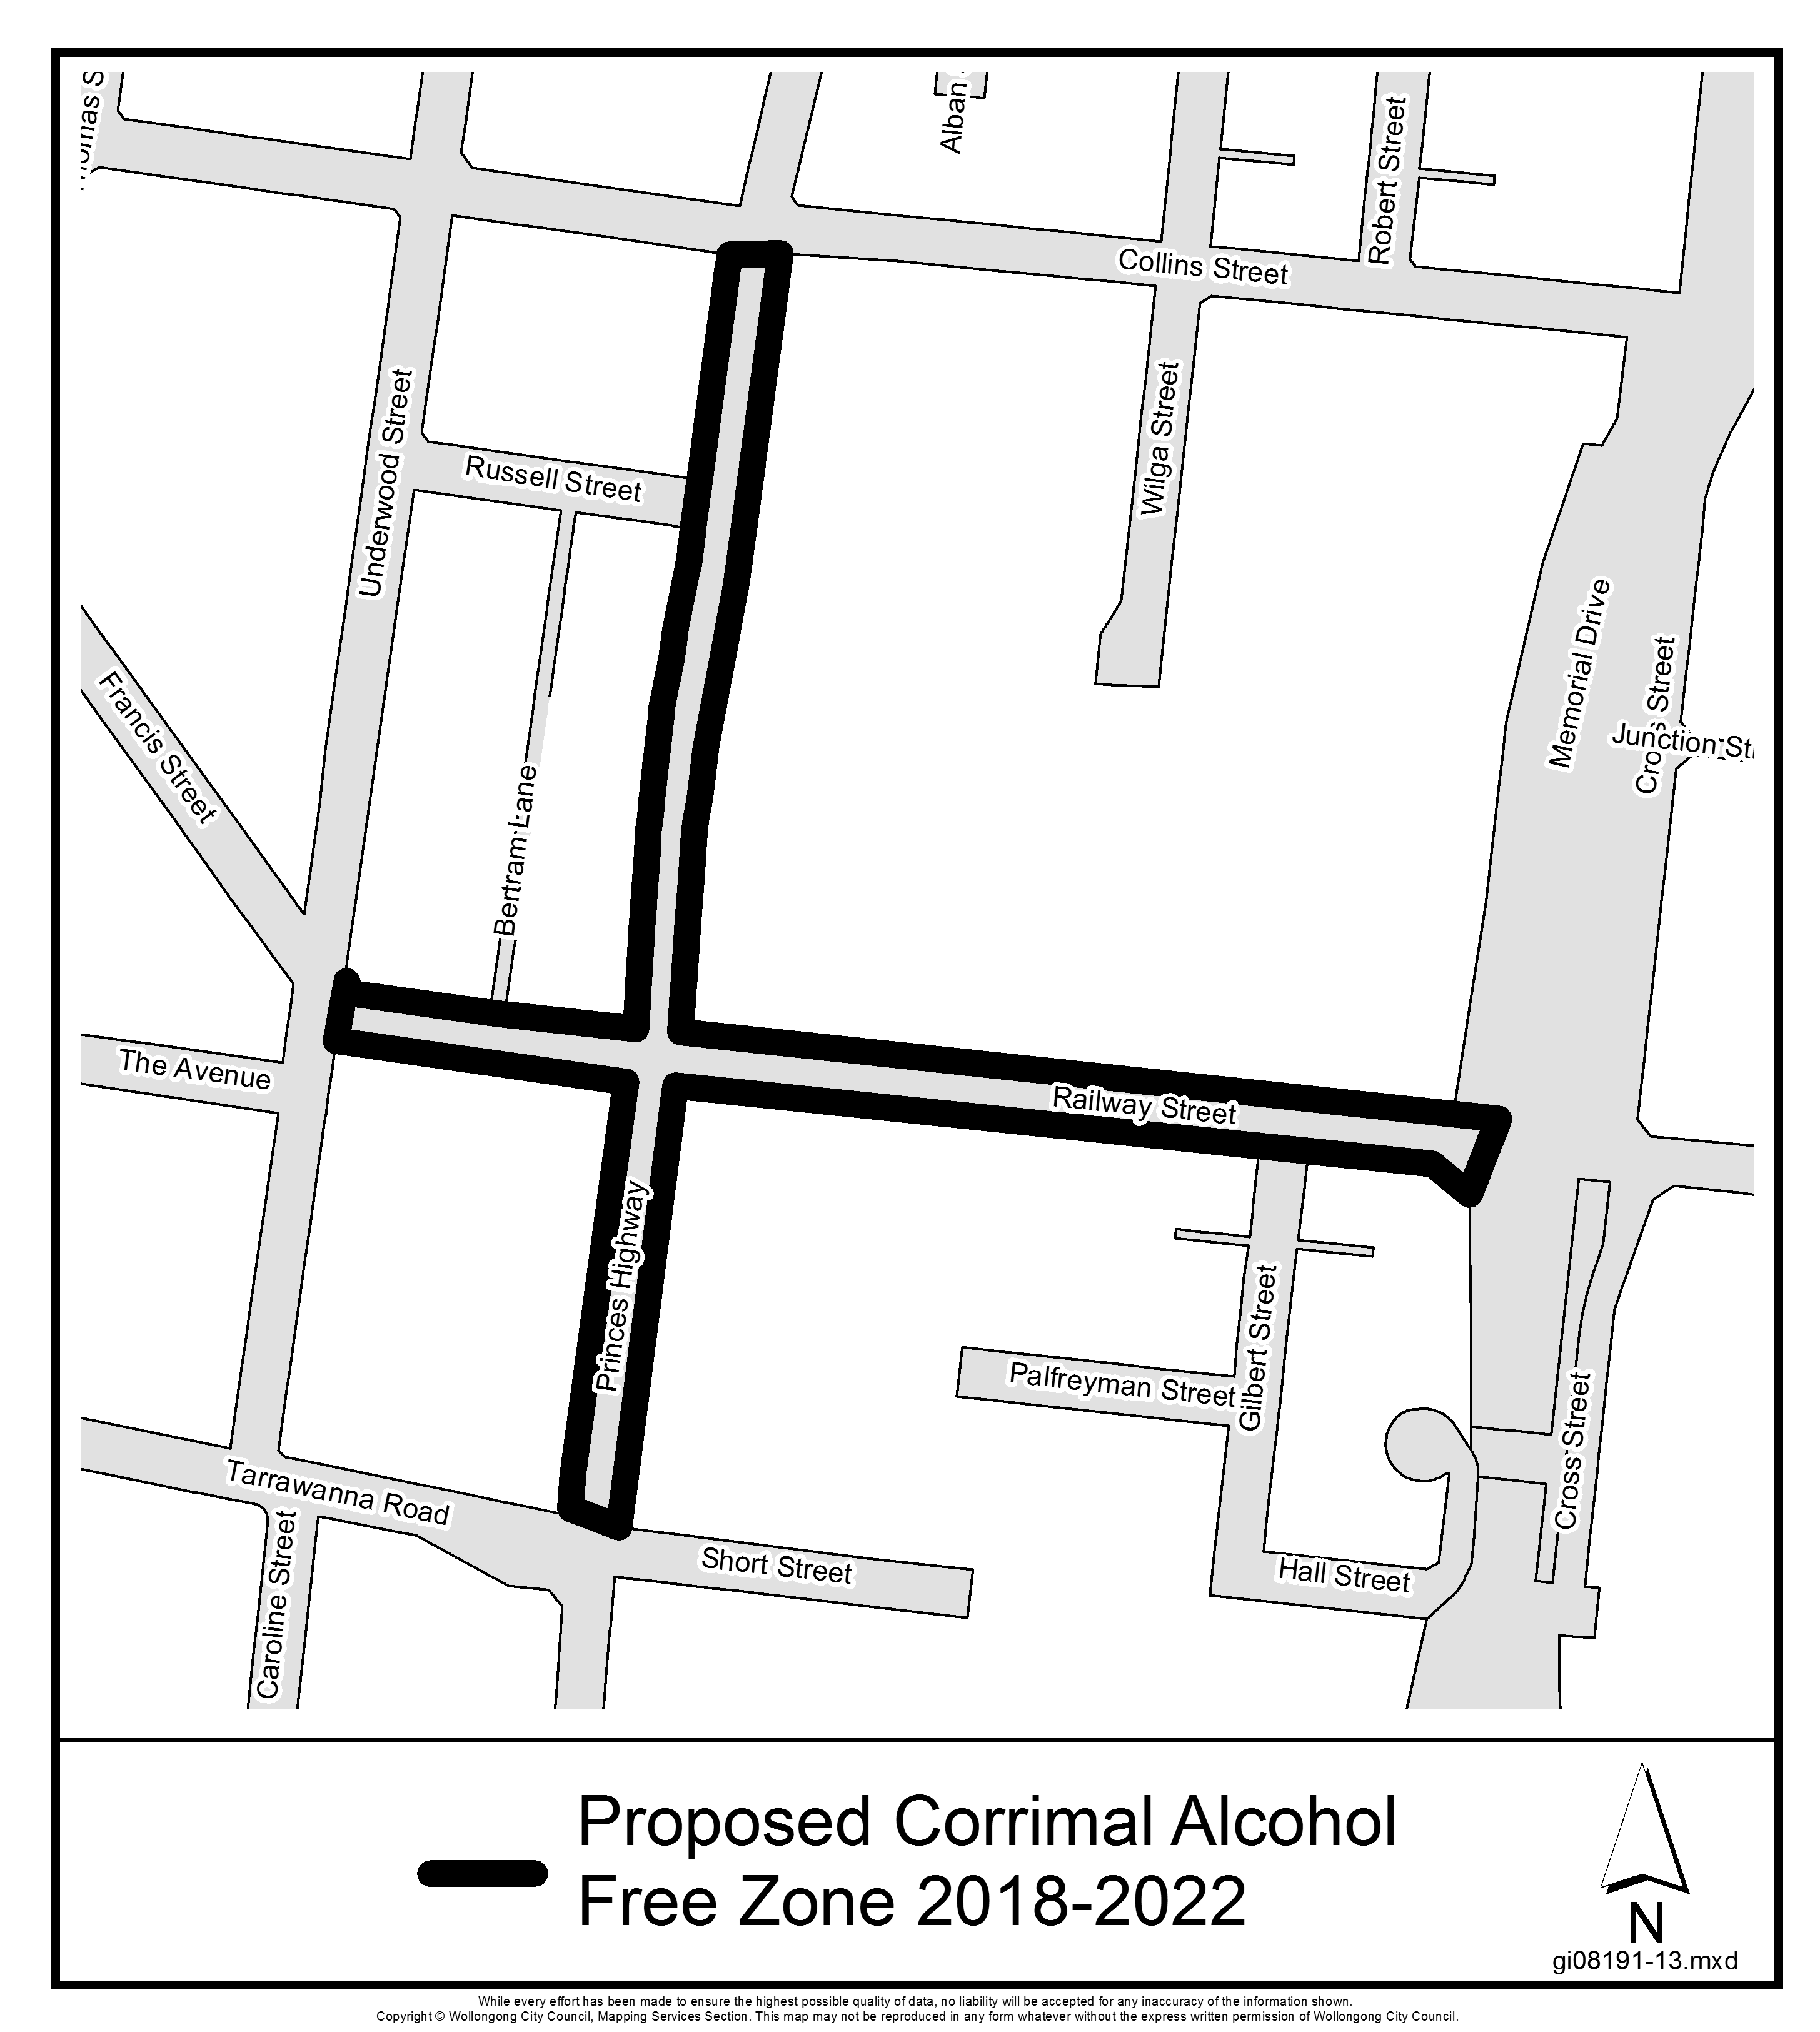 Proposed corrimal alcohol free zone 2018 2022